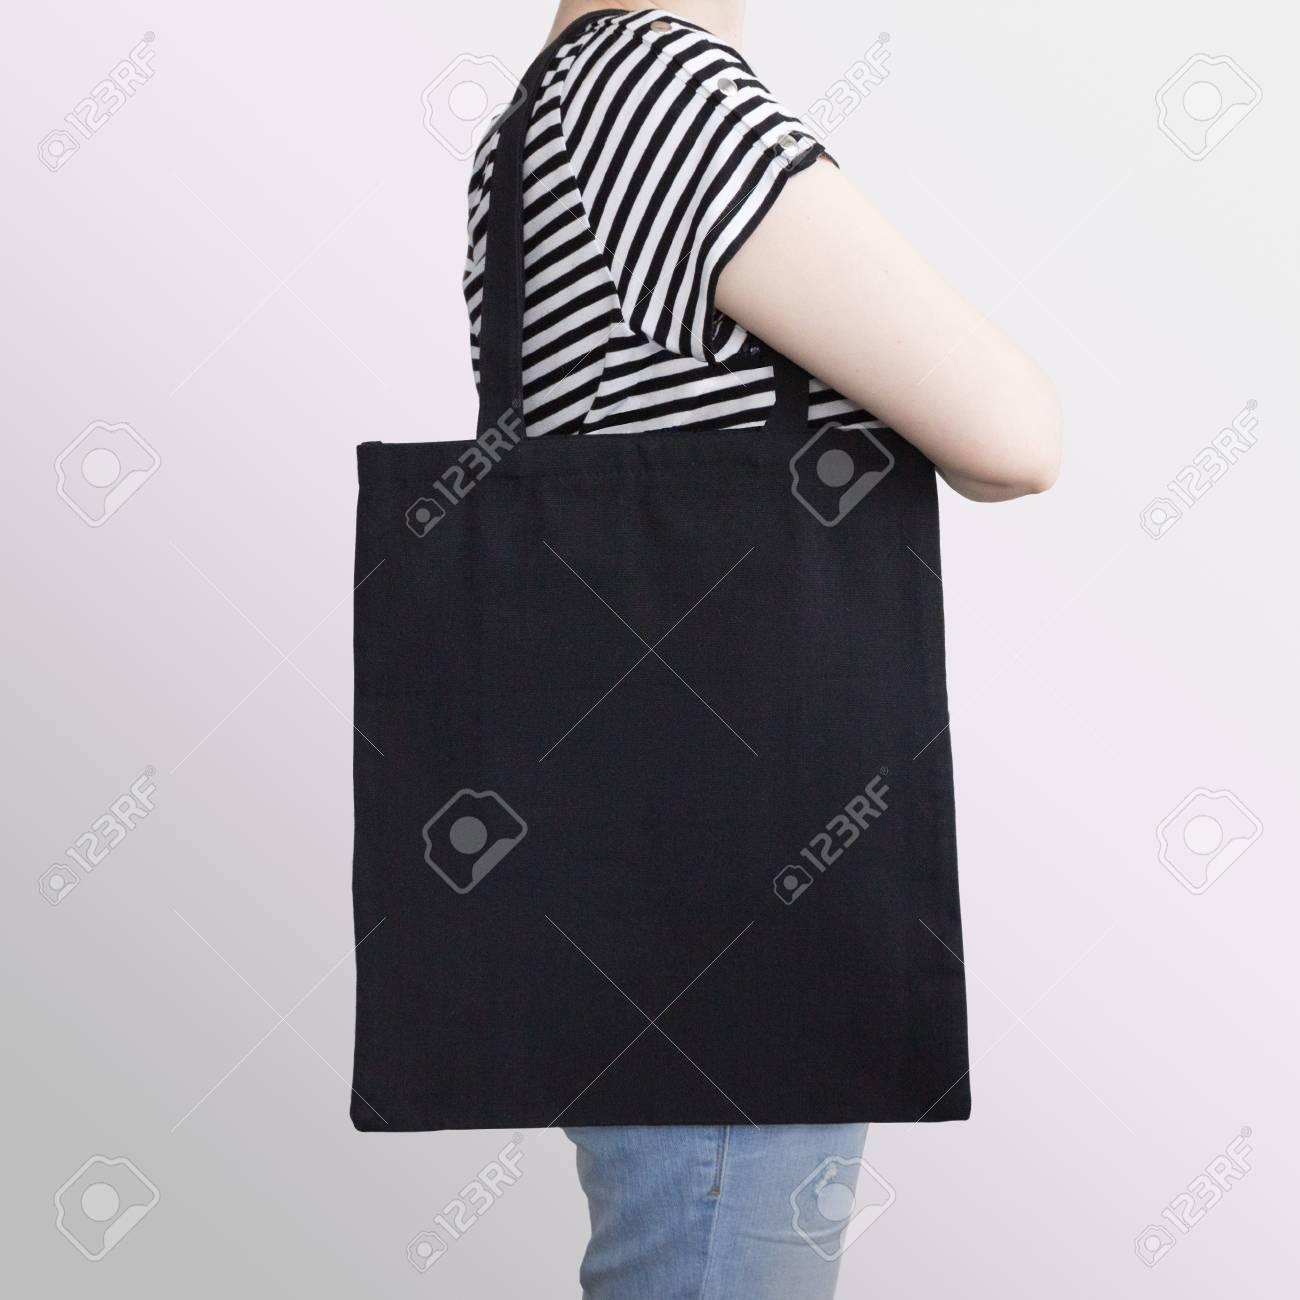 These tote bag mockups will save you time, money and. Girl Is Holding Black Cotton Eco Tote Bag Design Mockup Stock Photo Picture And Royalty Free Image Image 100702875